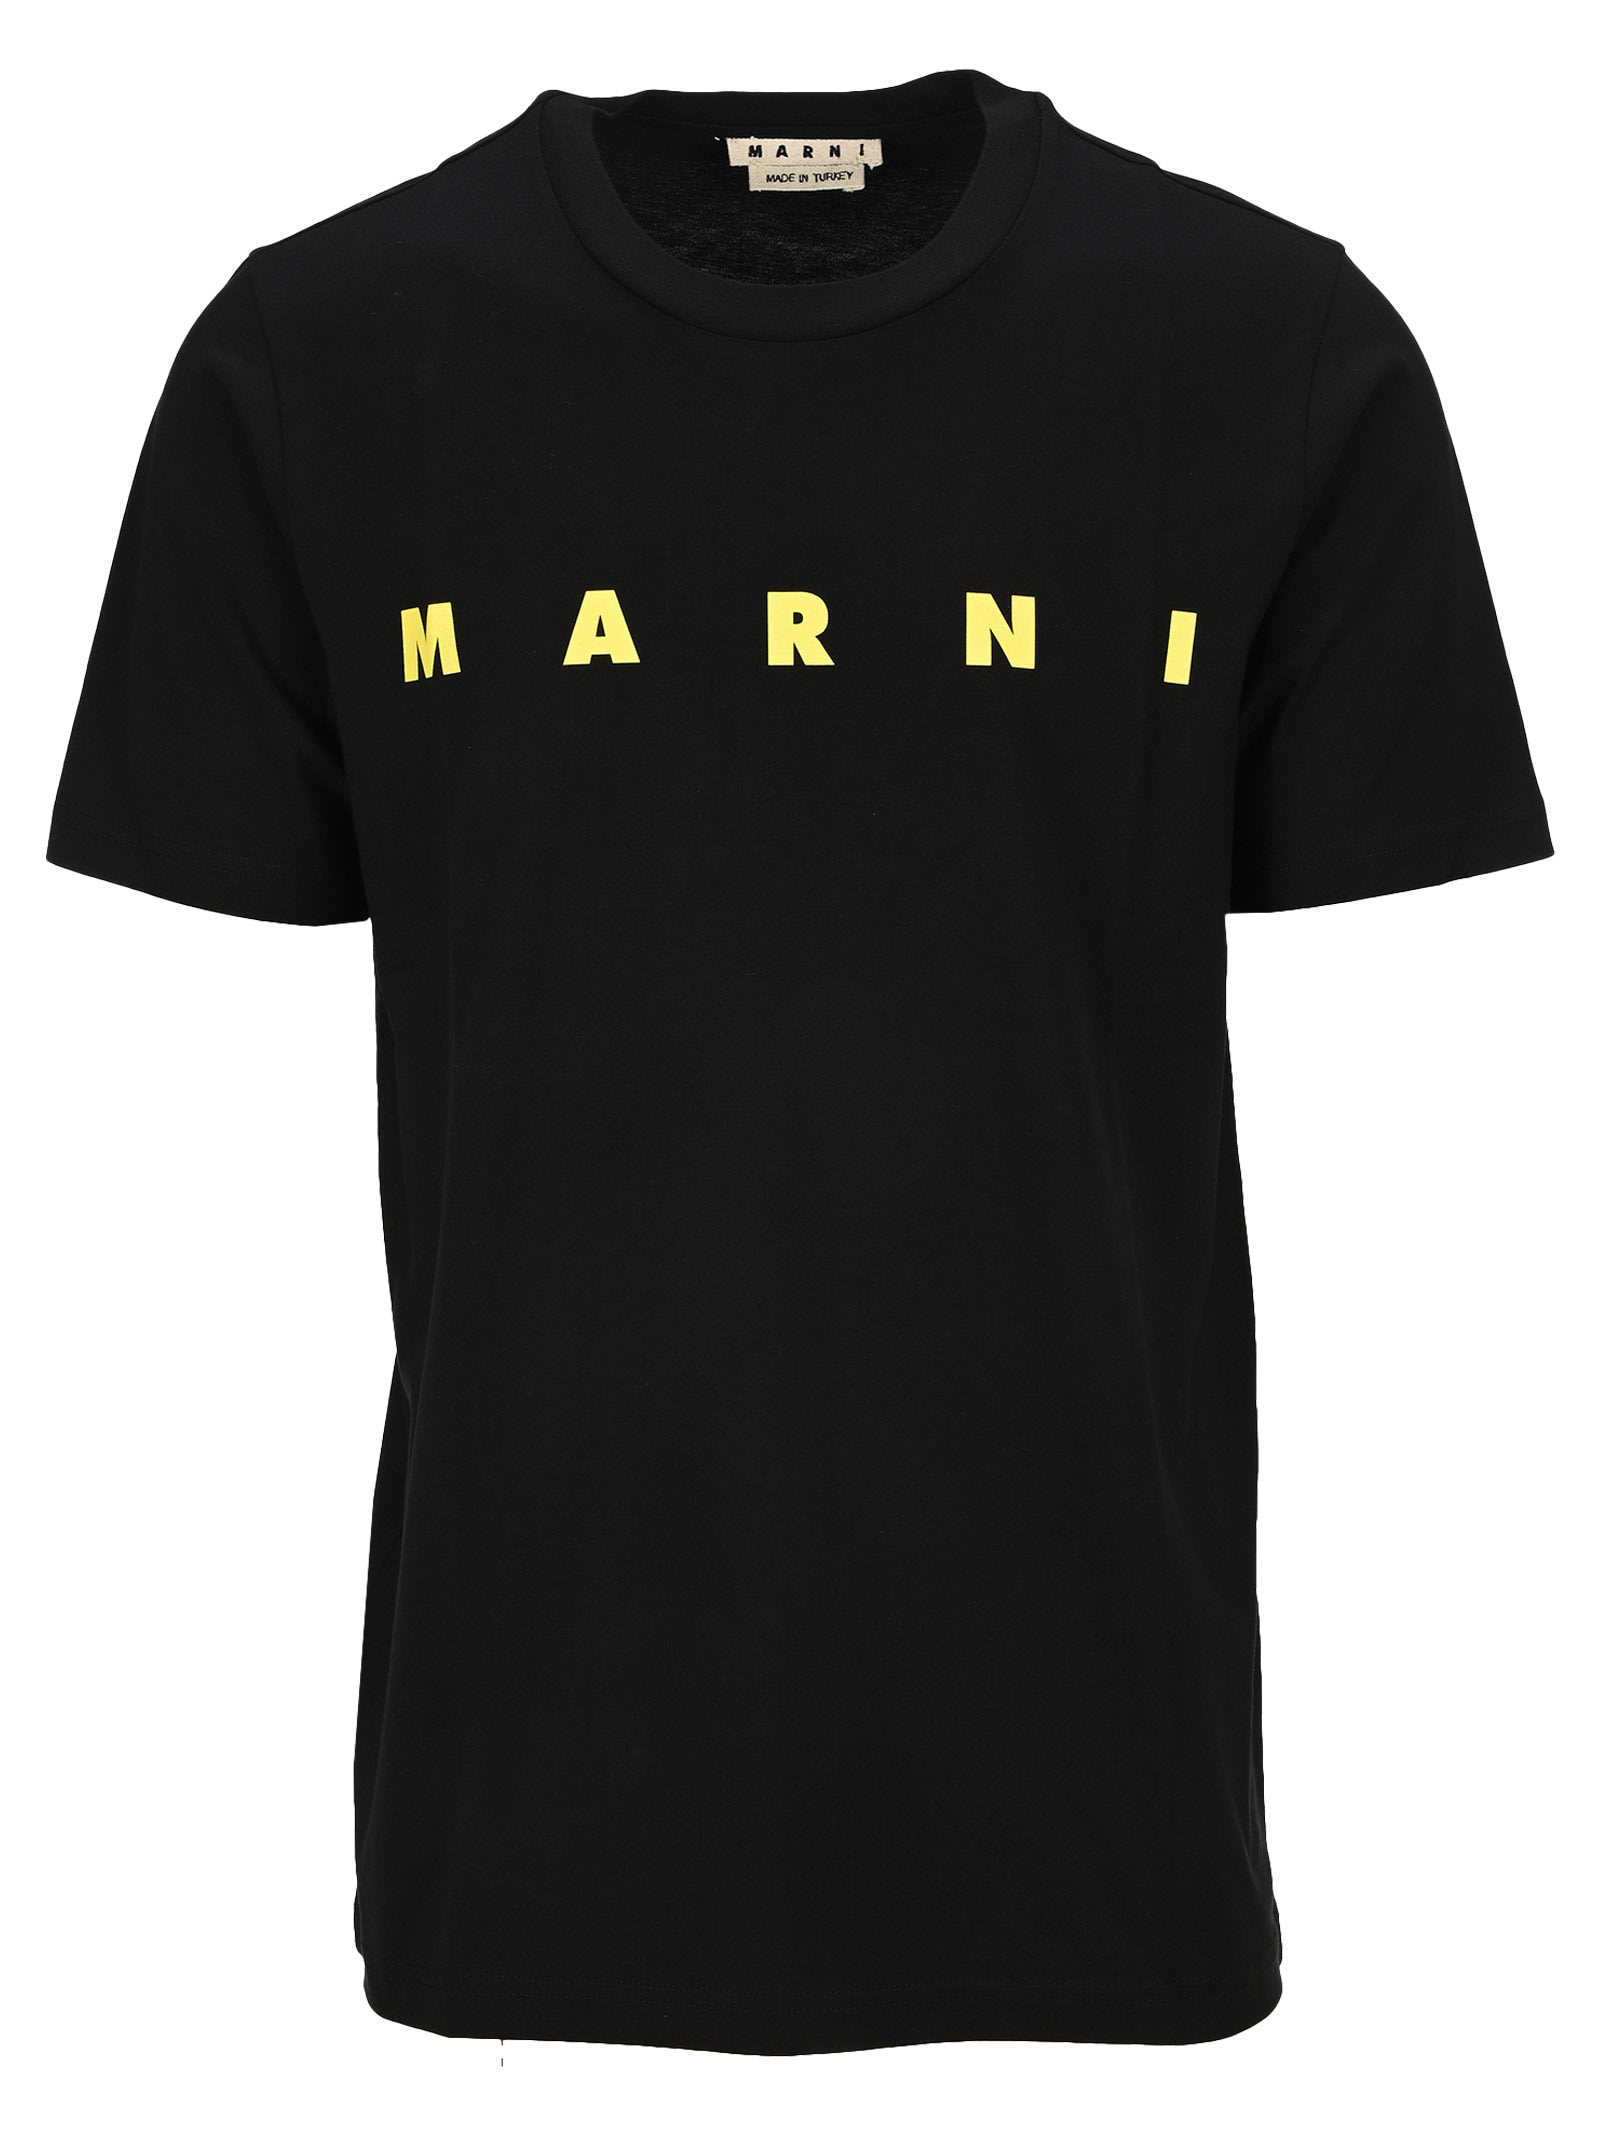 Marni Short-sleeved Organic Jersey T-shirt In Black